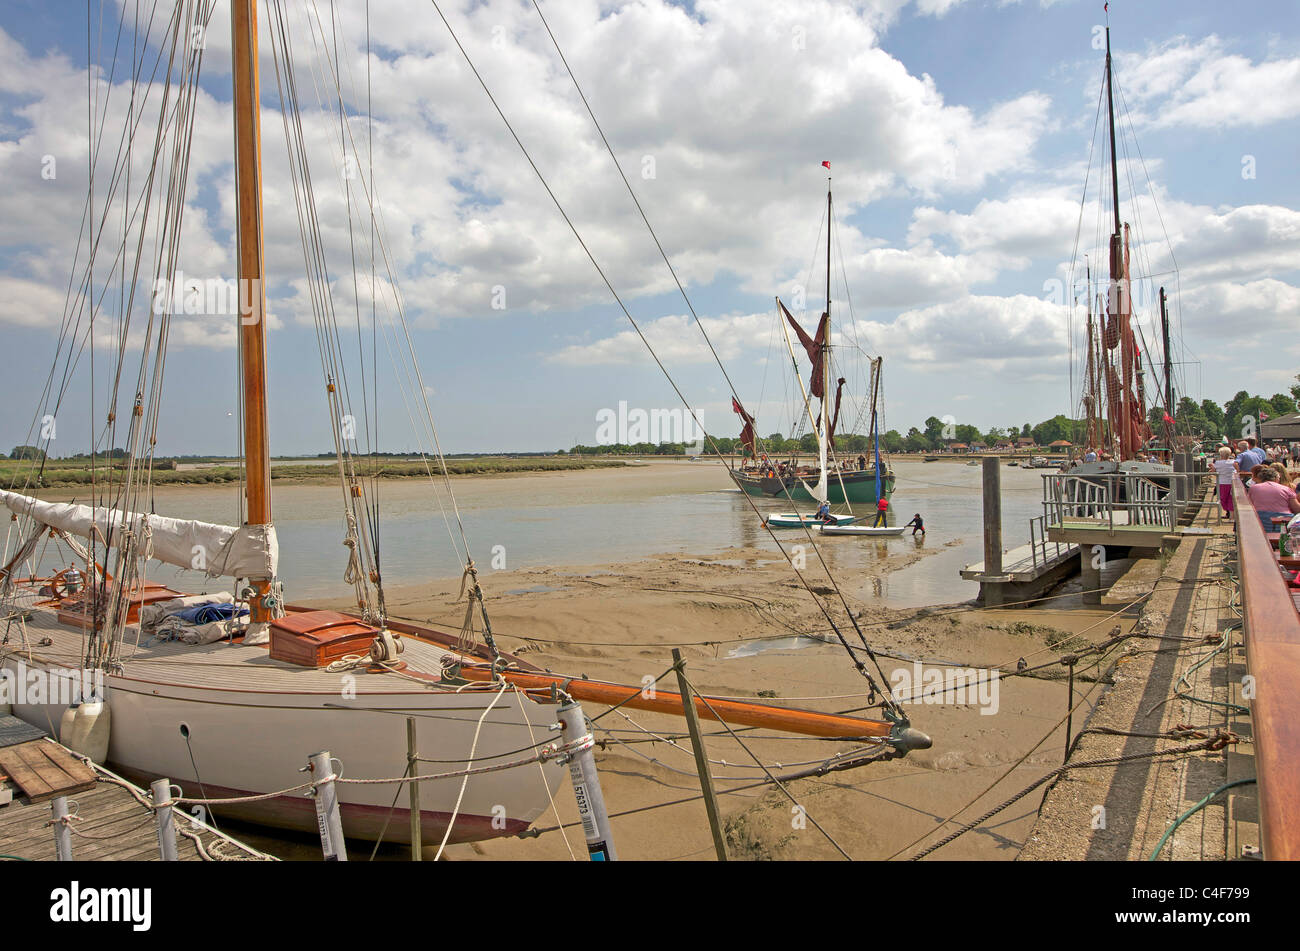 Boats on the Blackwater riverside at the Essex town of Malden - Stock Image